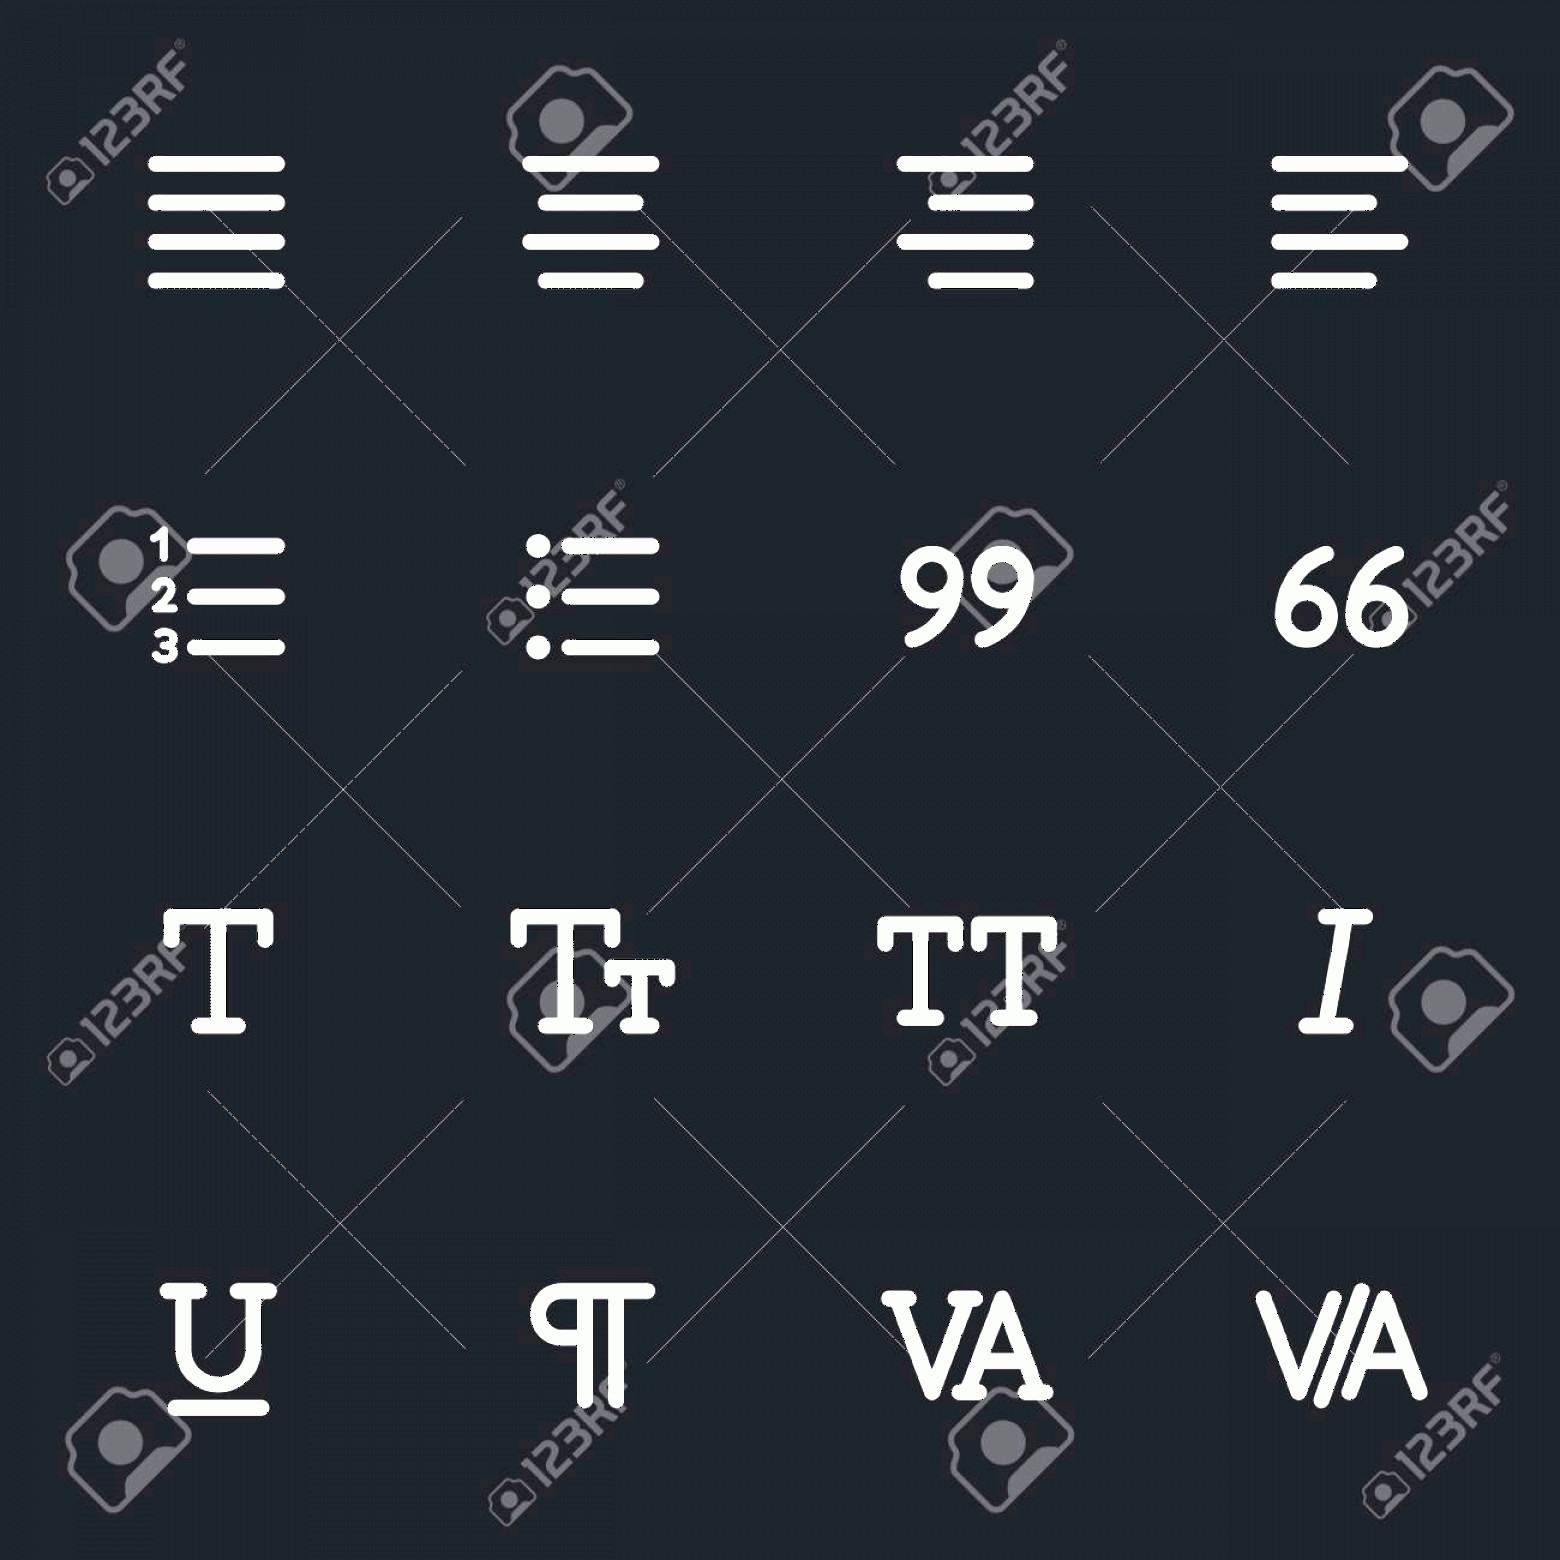 Editors Symbols In Vector: Photostock Vector Outline Vector Icons For Web And Mobile Text Editor Icons Pixel Stroke X Resolution